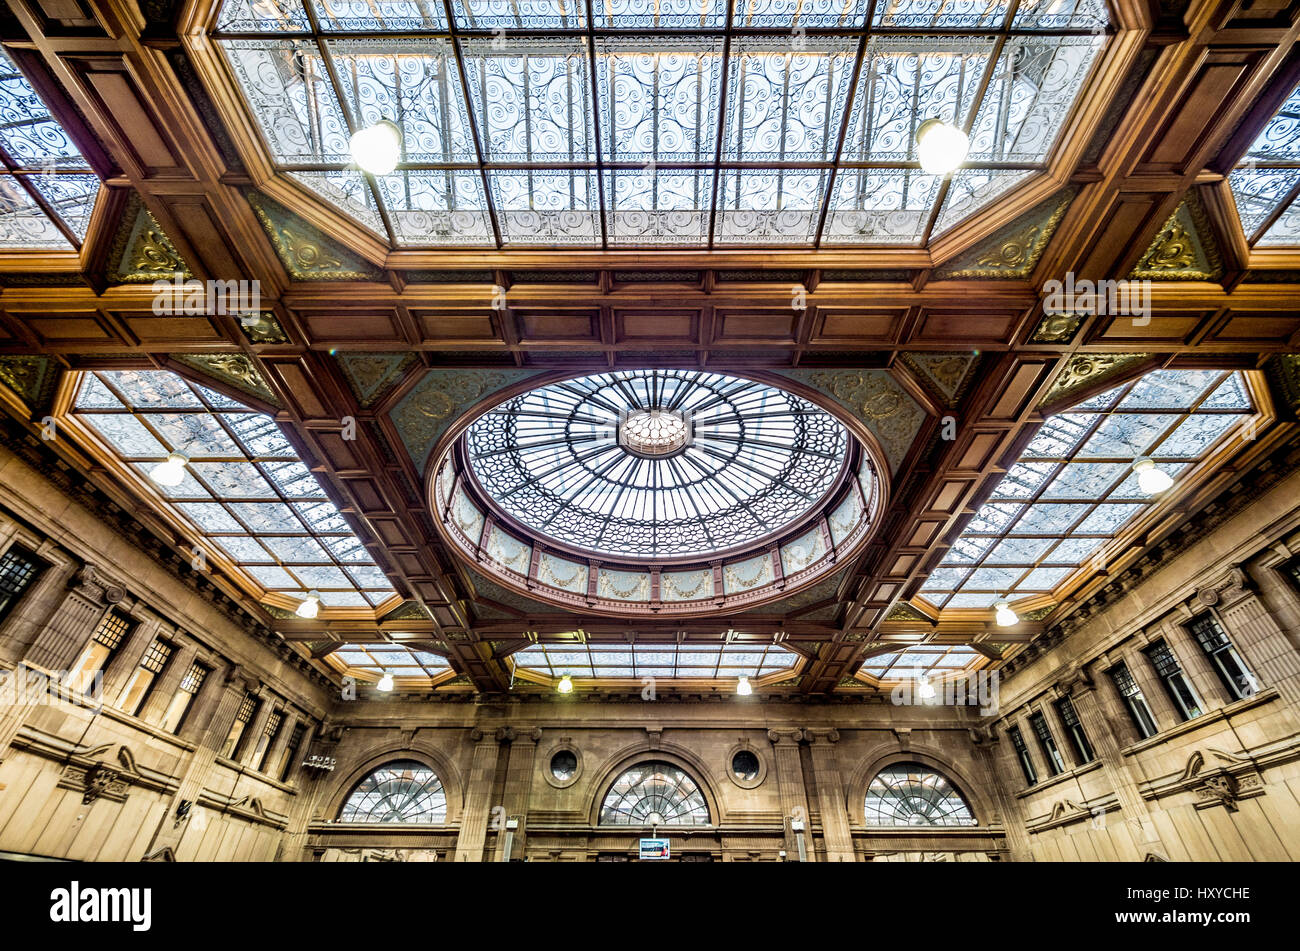 Edinburgh Waverley Station - restored ticket office with ornate ceiling - Stock Image